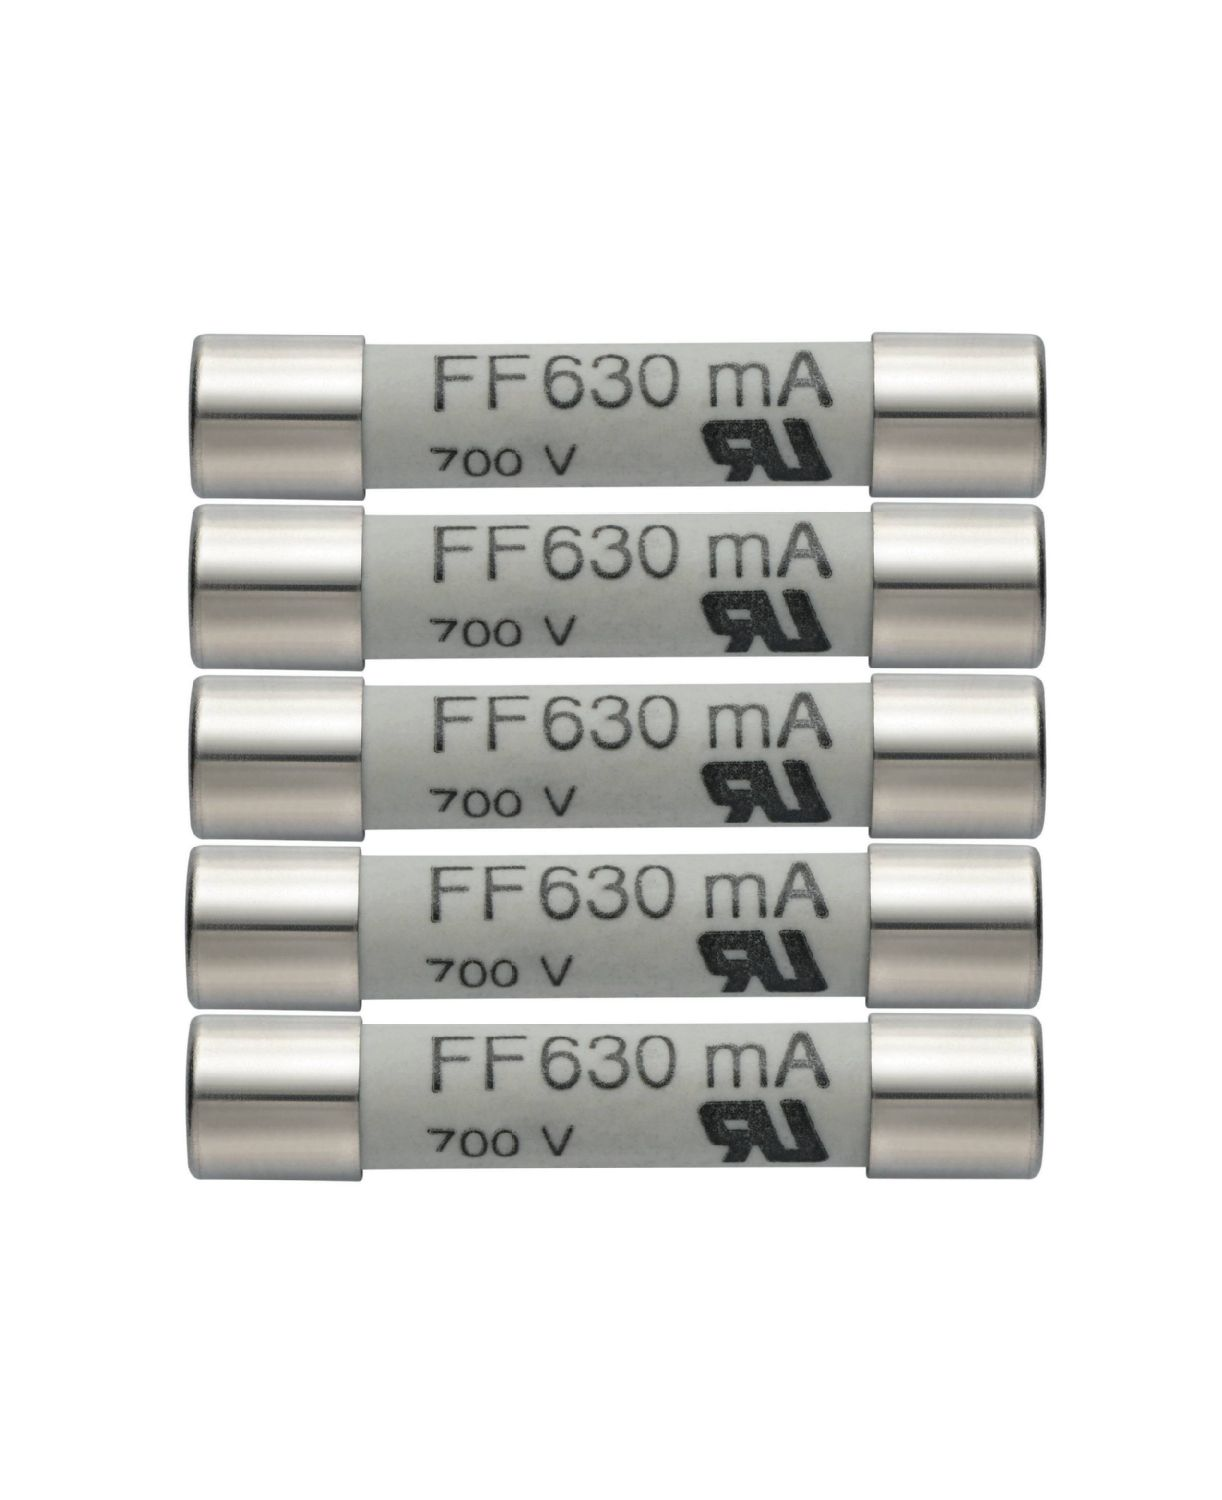 Fusibles de rechange 630 mA/600 V 0590 0007